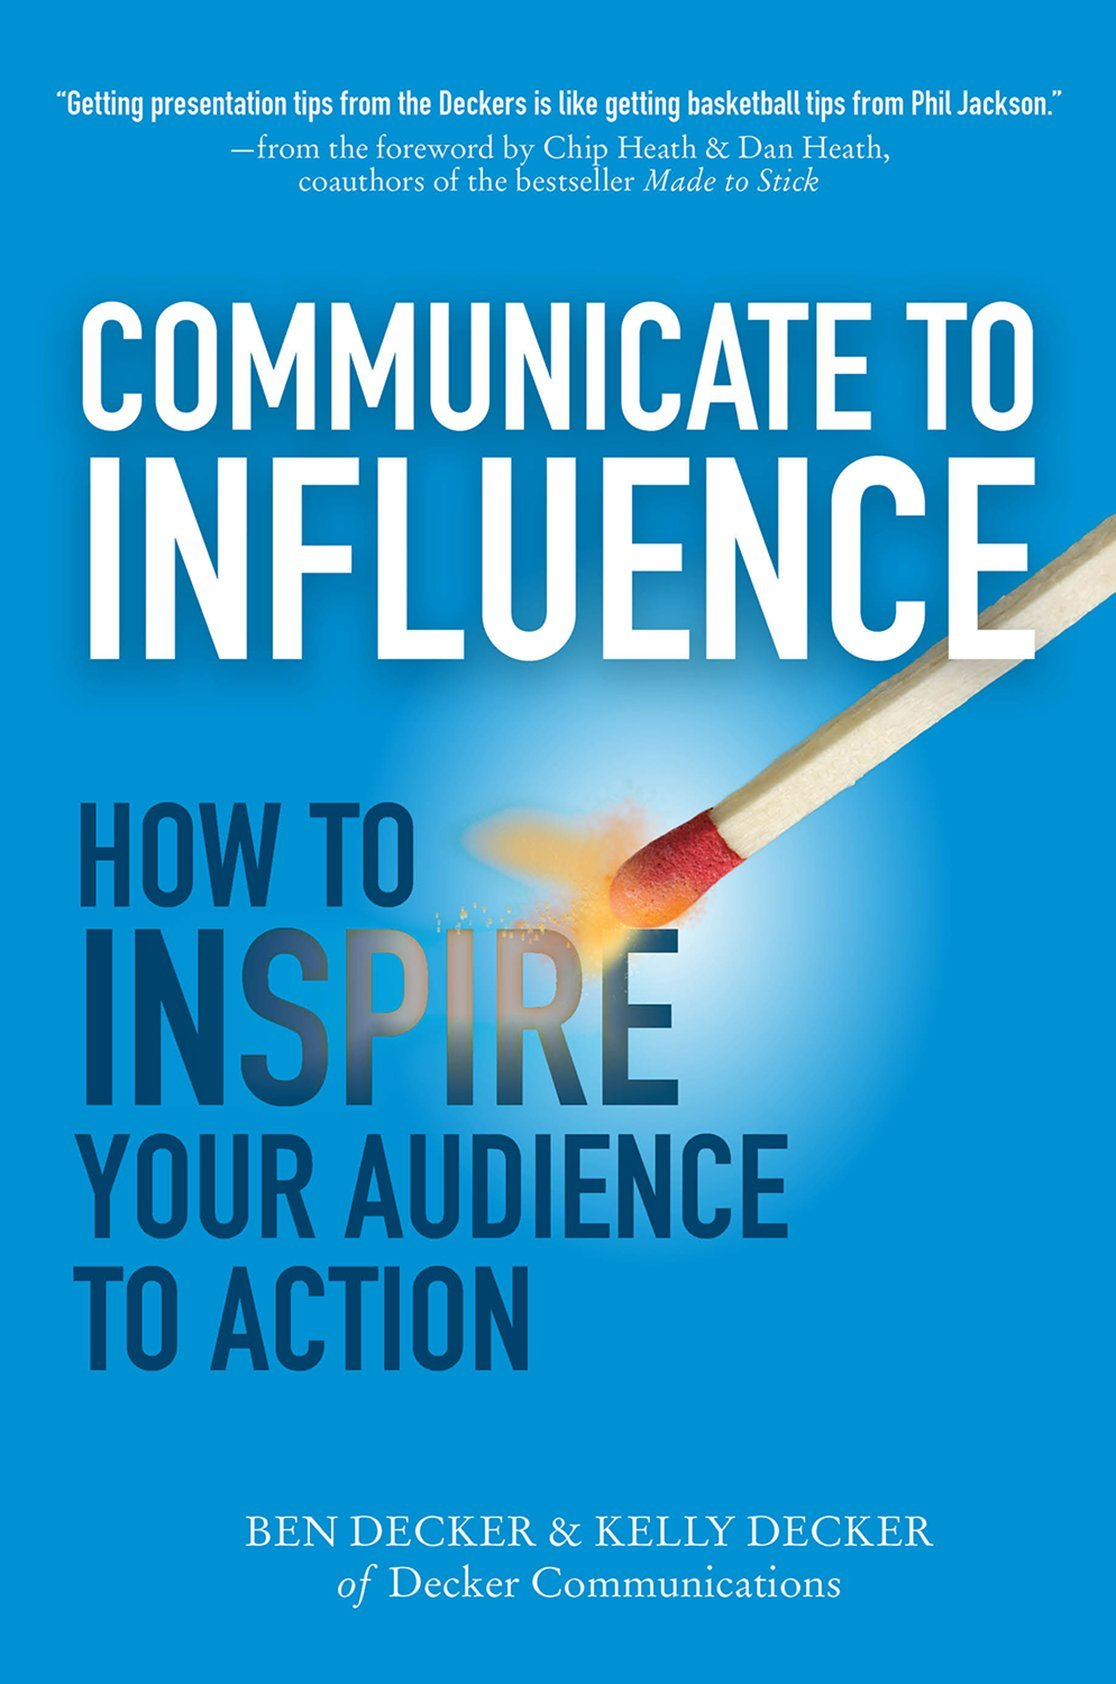 Communicate to influence how to inspire your audience to action communicate to influence how to inspire your audience to action ben decker kelly decker 9780071839839 amazon books fandeluxe Gallery